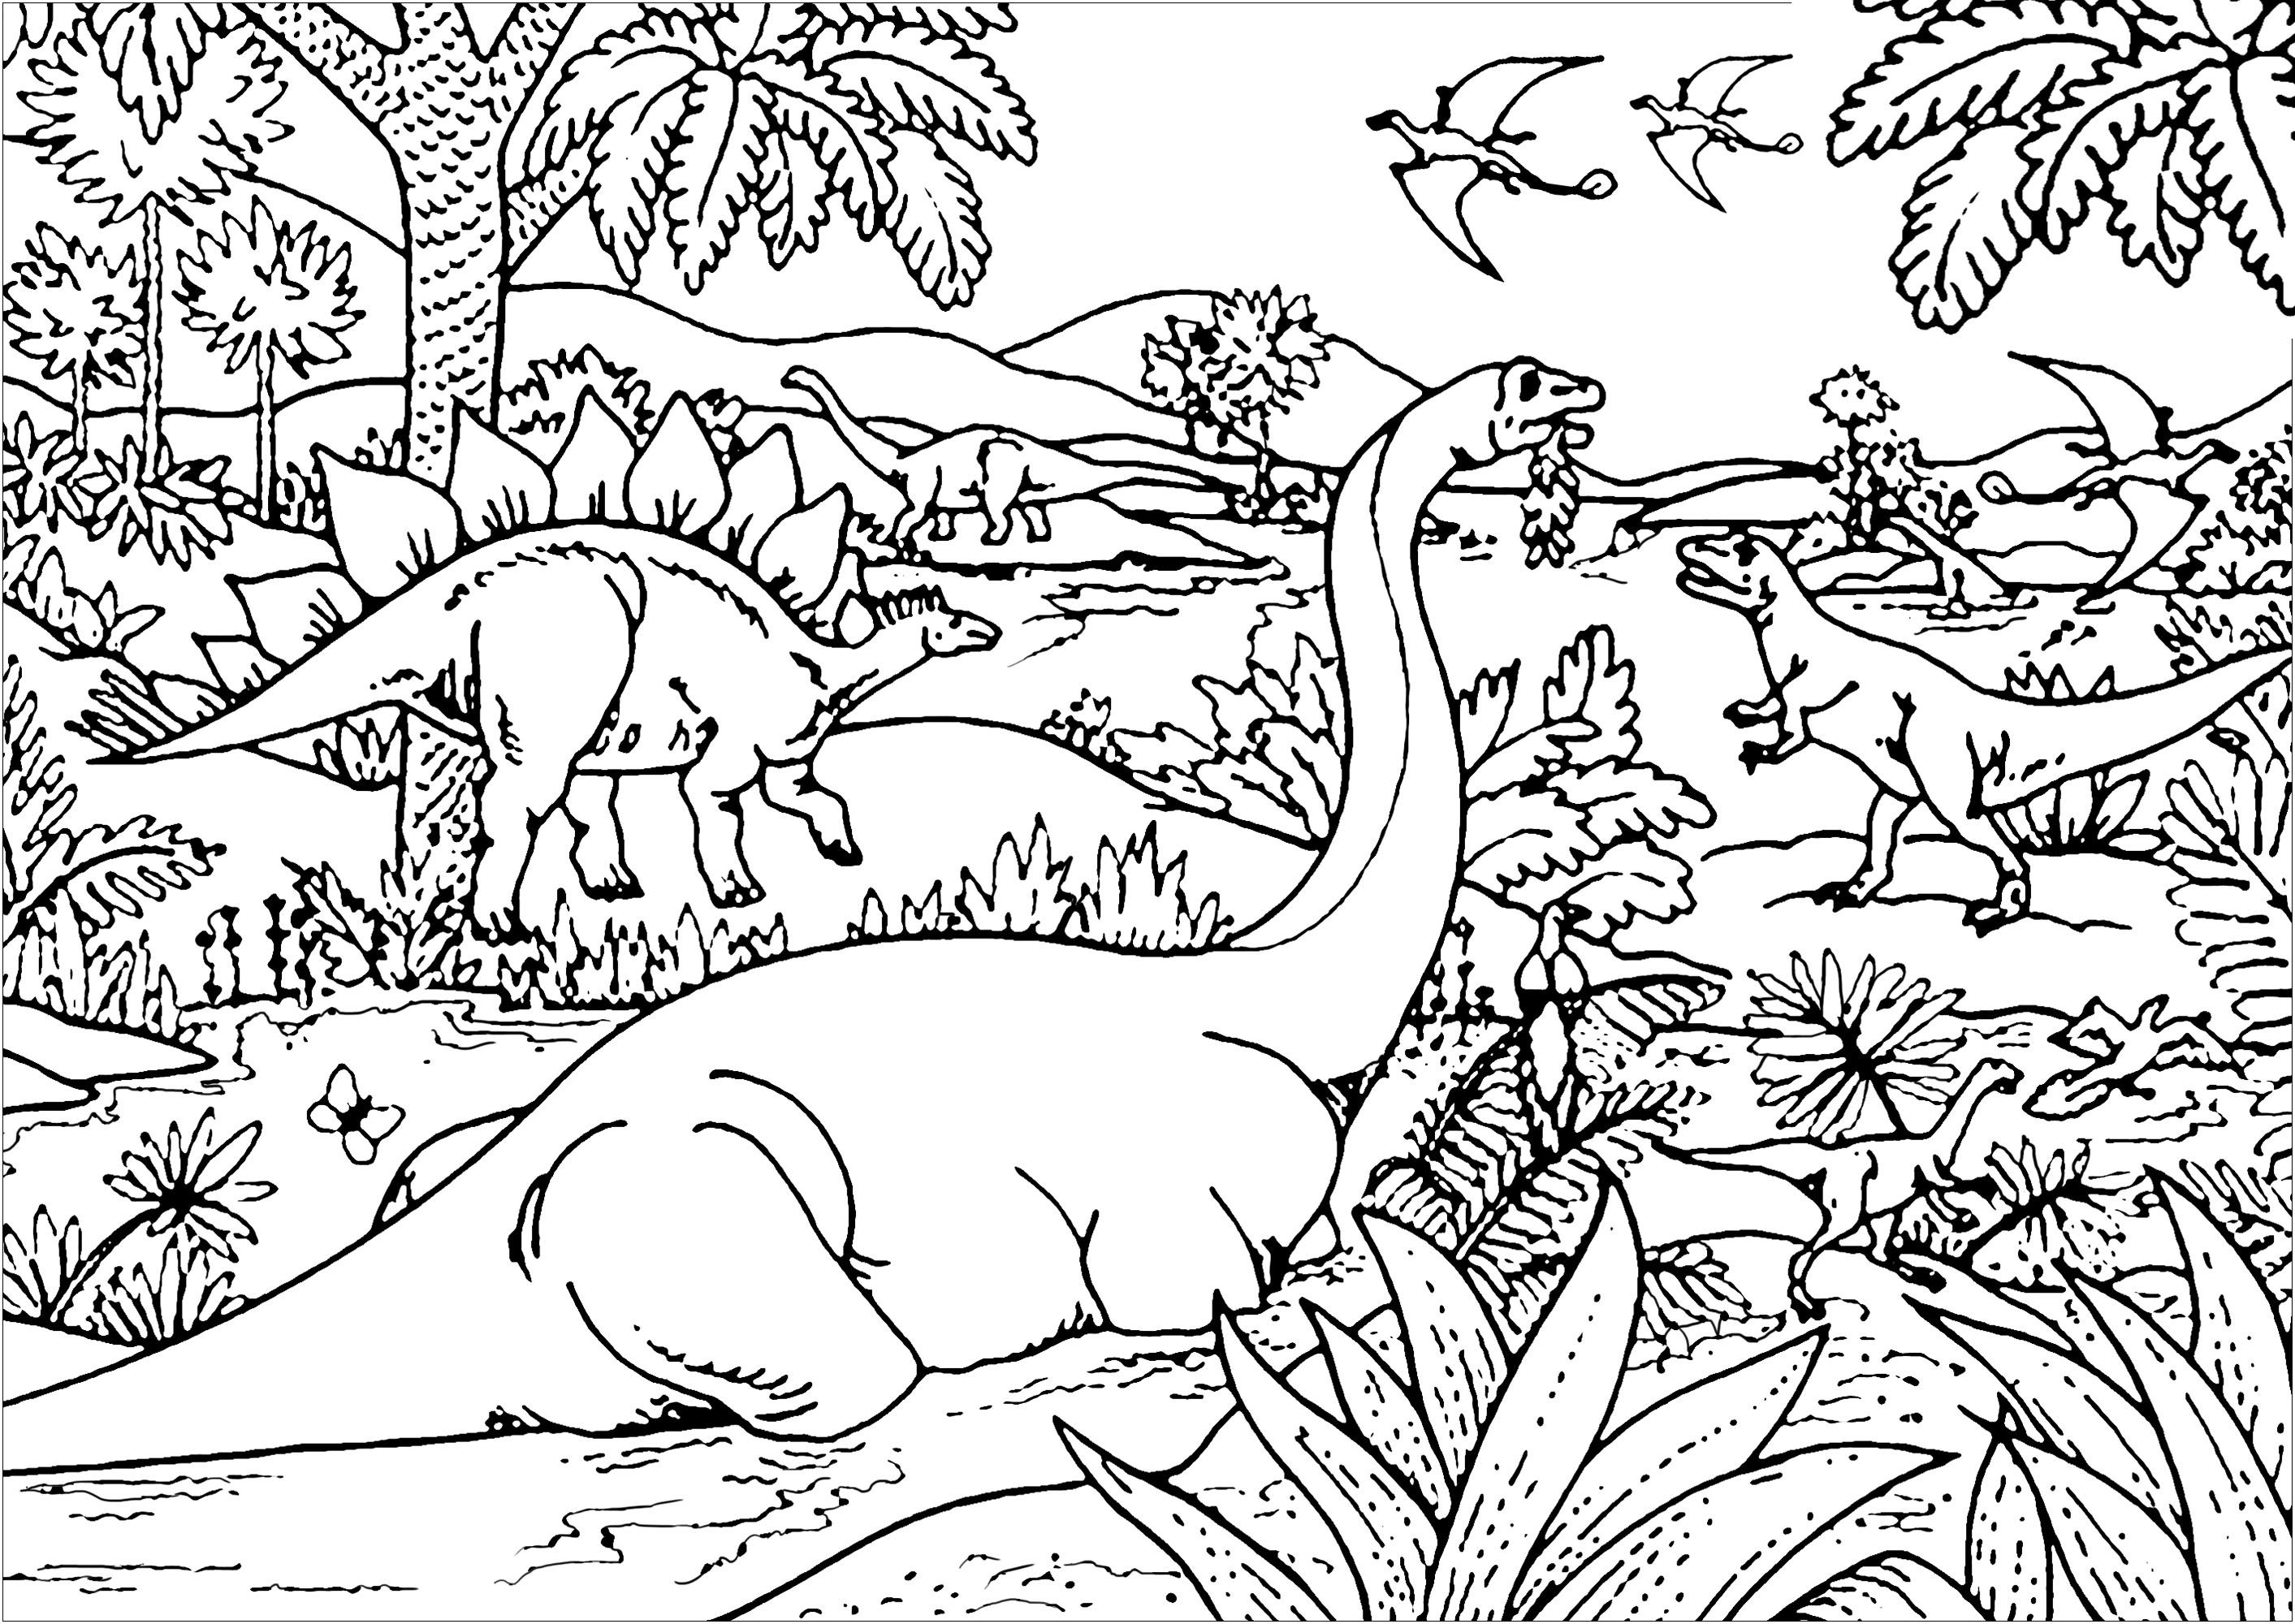 Many dinosaurs in a plain - Dinosaurs Coloring Pages for ...